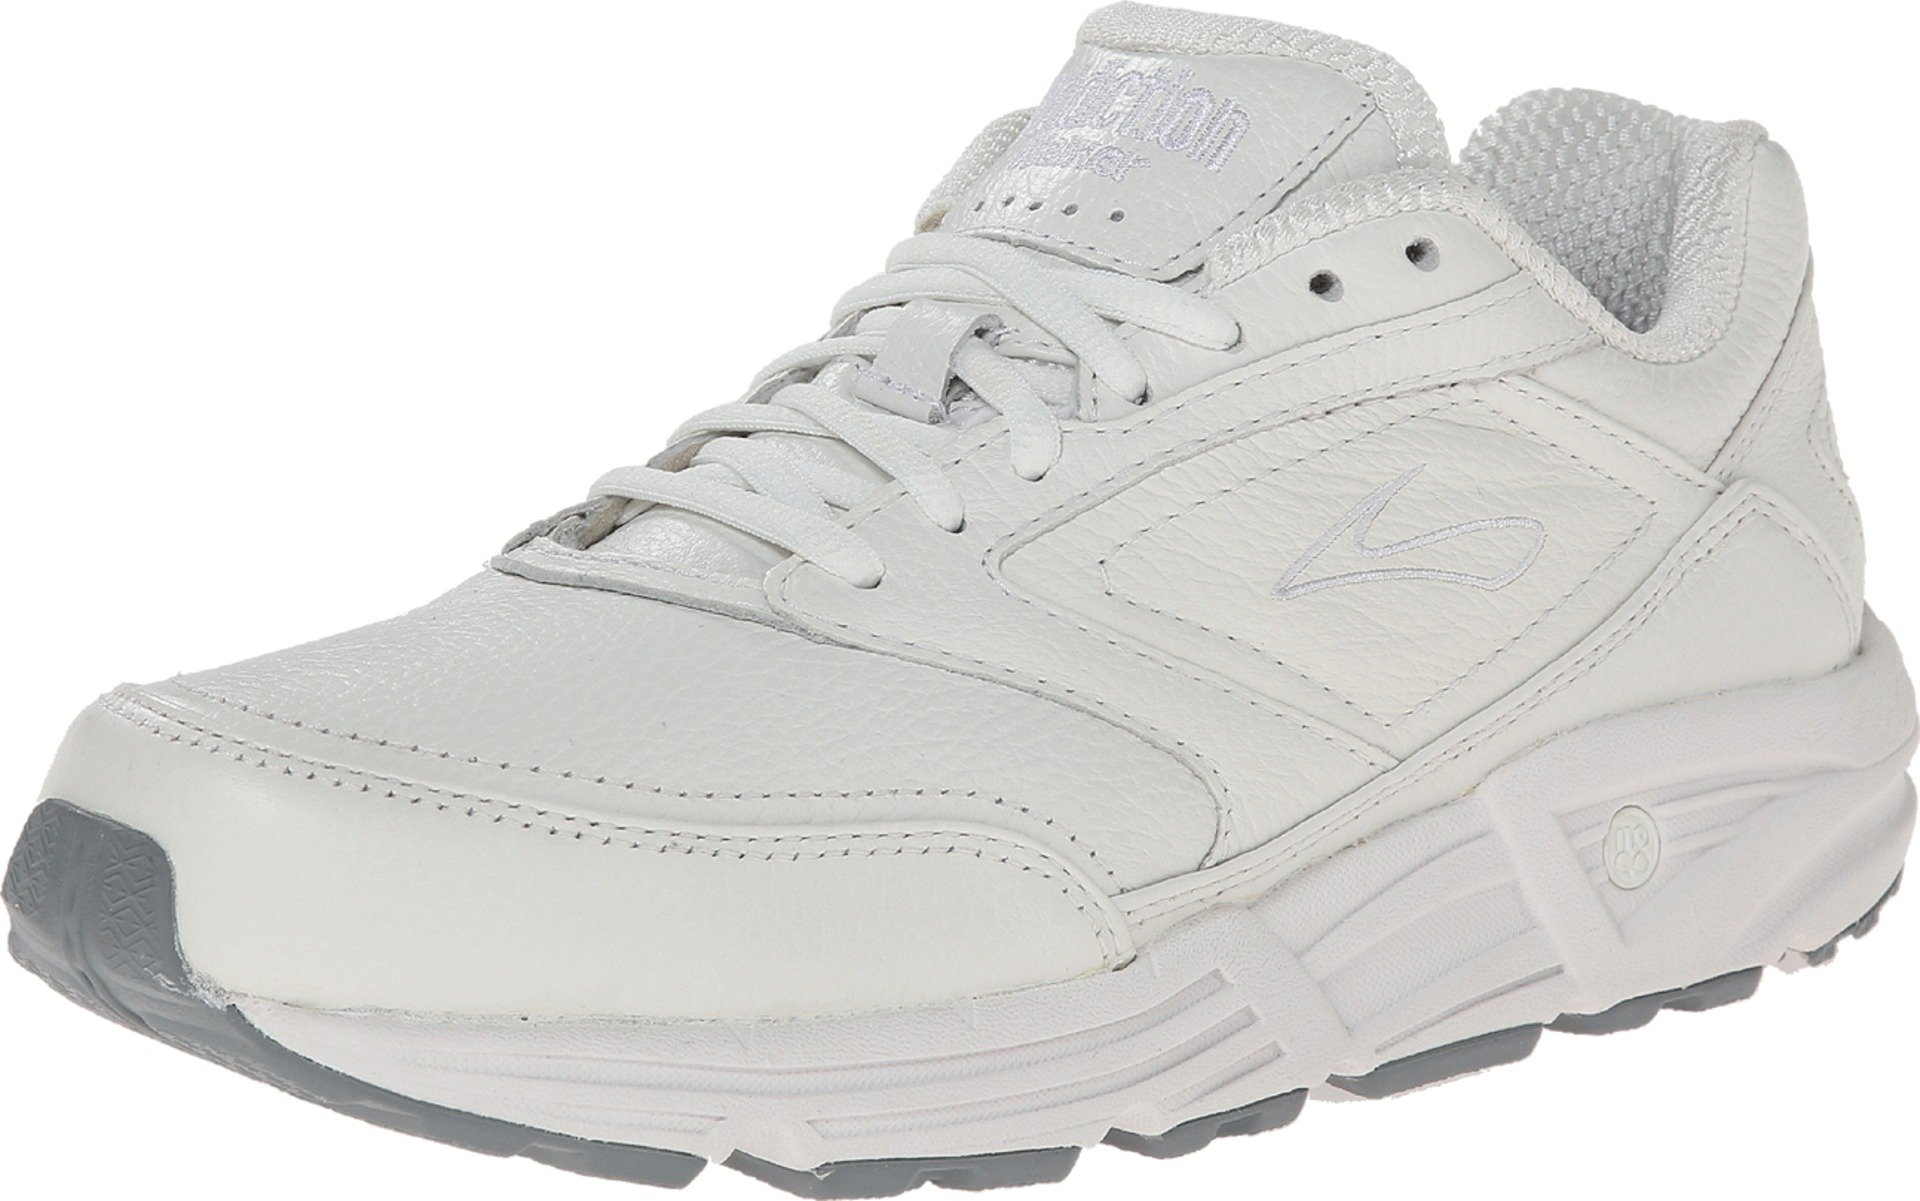 Brooks Men 's Addiction Walker Walking Zapato, color Blanco, talla 8.5 D by Brooks